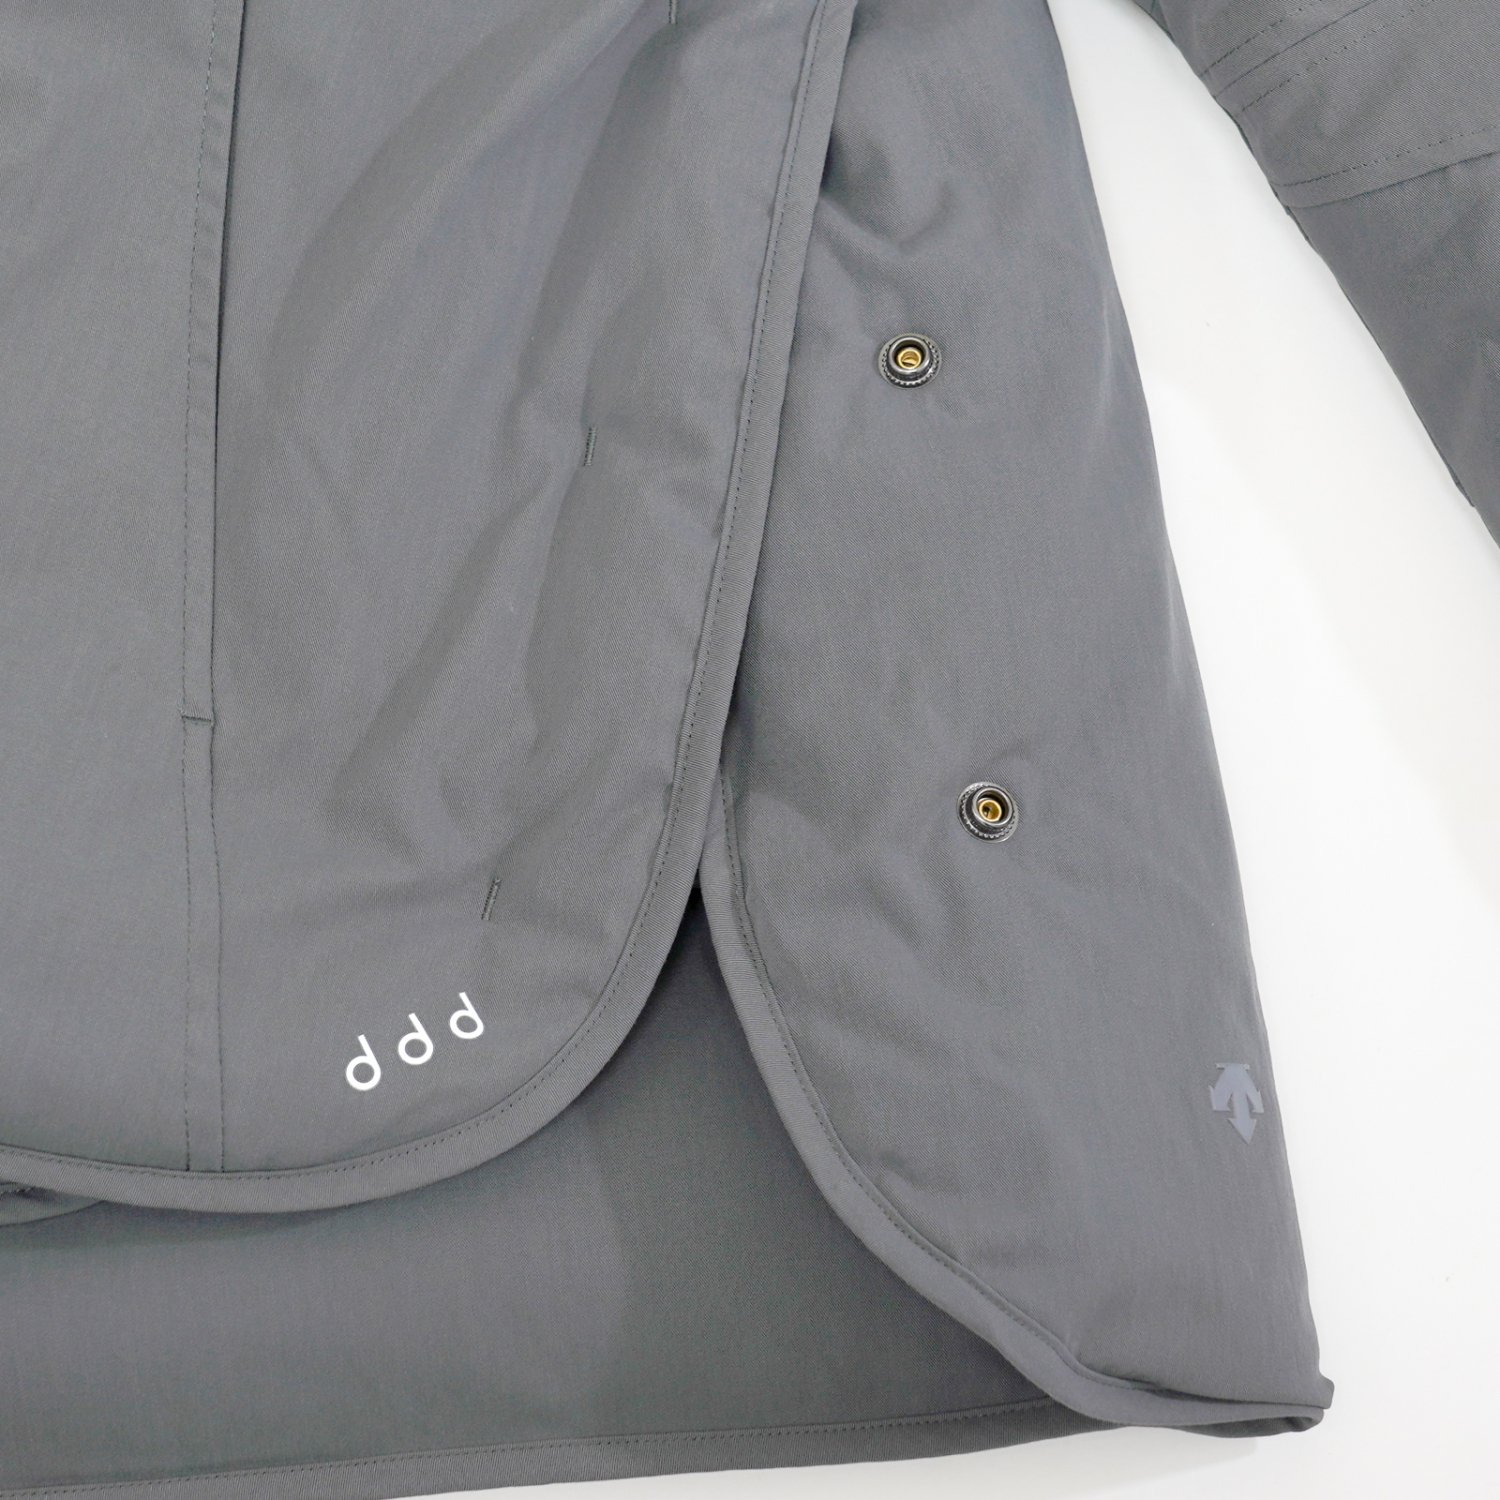 DESCENTE ddd * HEATNAVI PUFF DOWN JACKET * Gray